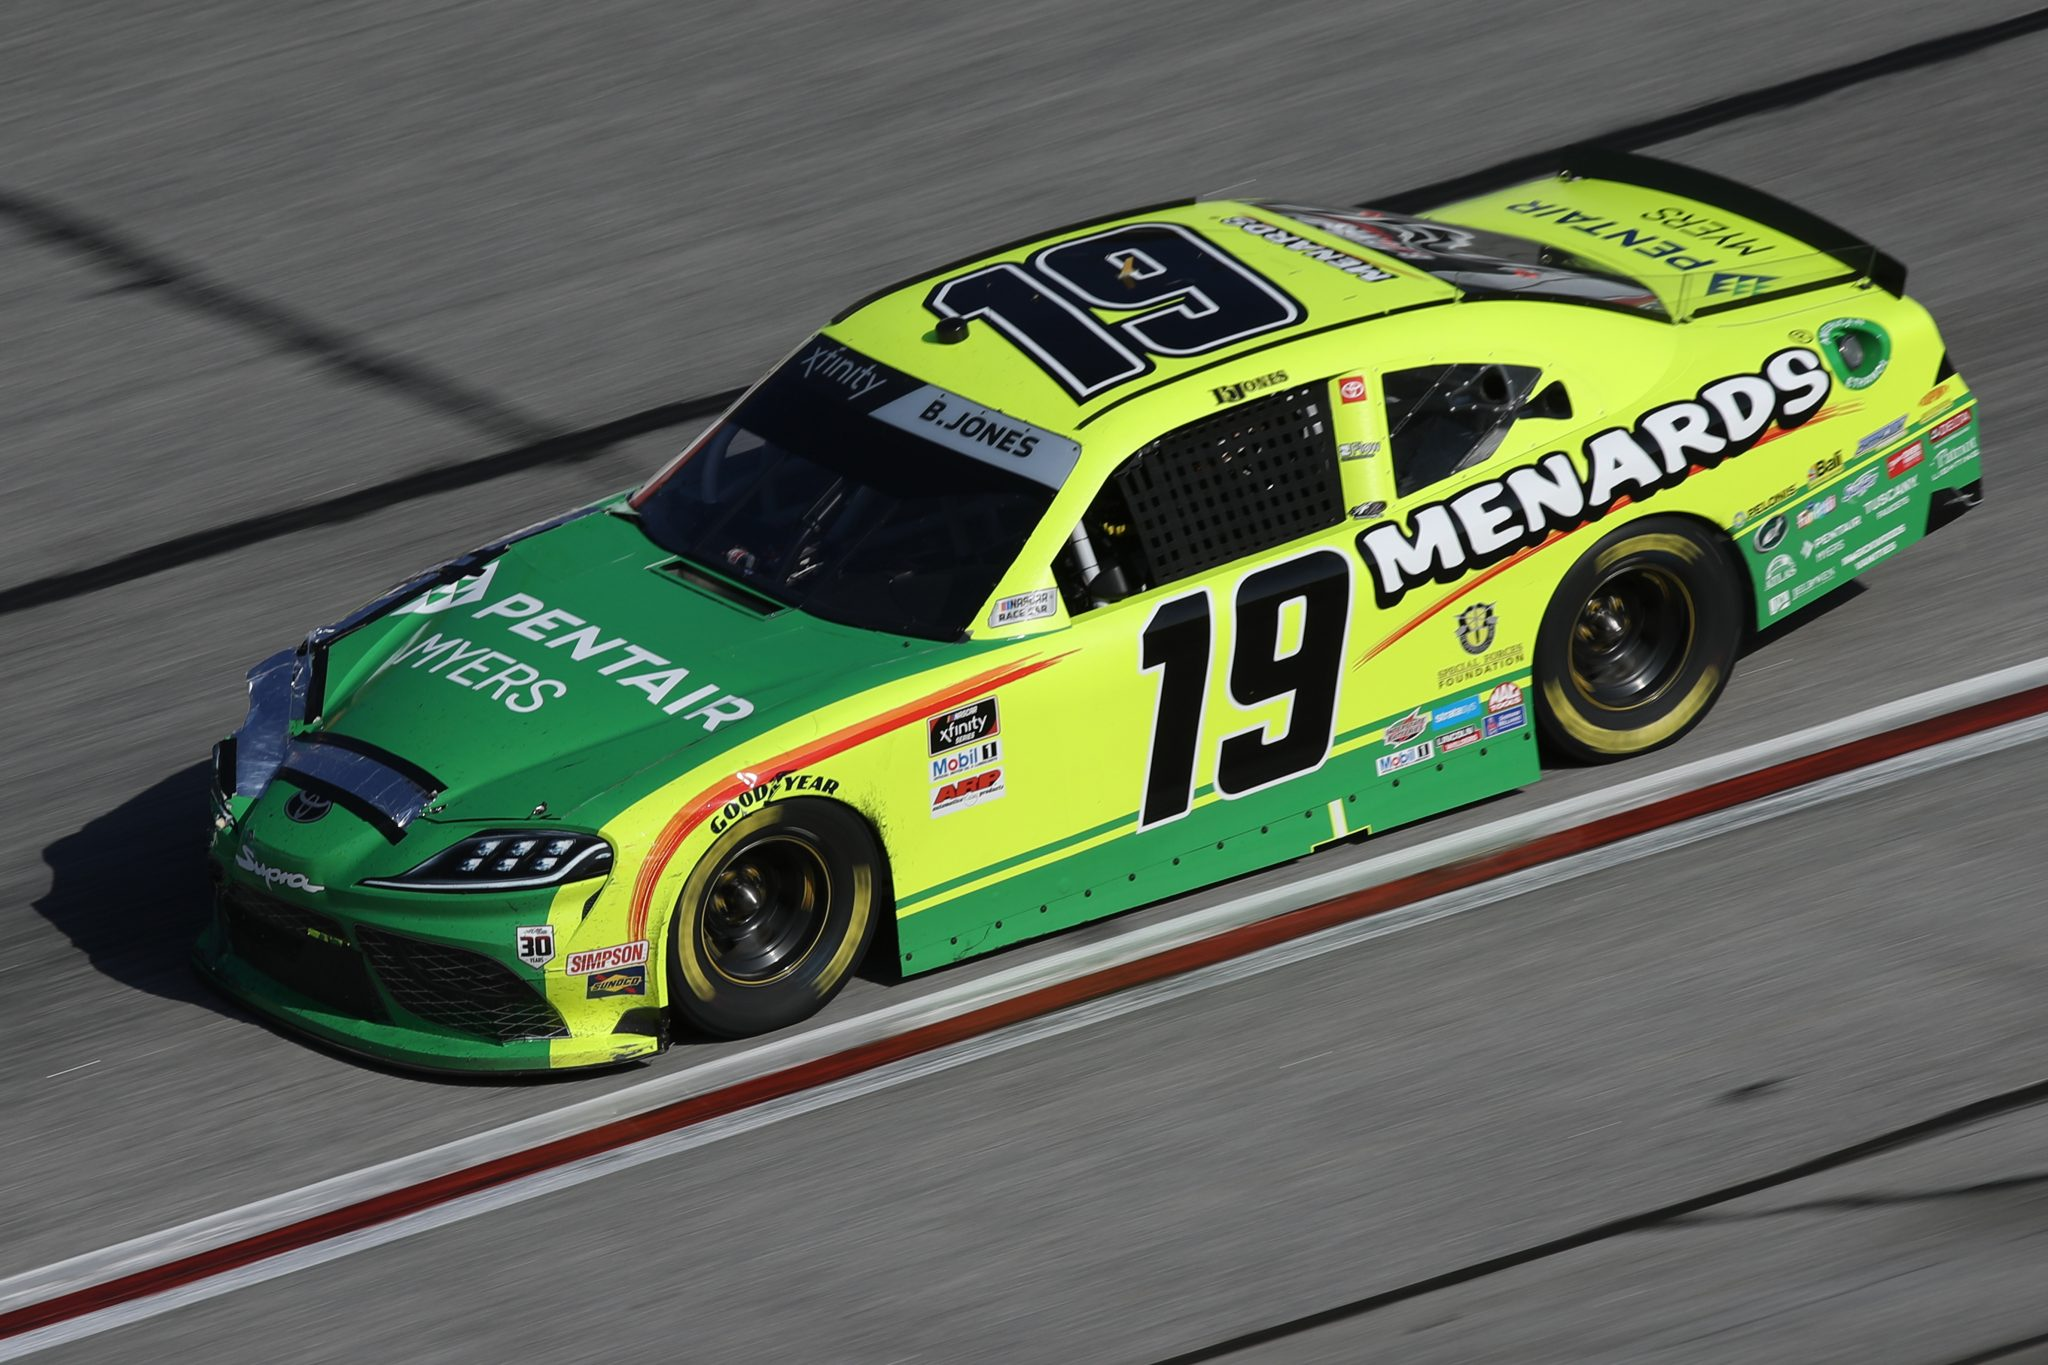 HAMPTON, GEORGIA - MARCH 20: Brandon Jones, driver of the #19 Menards/Pentair Toyota, drives during the NASCAR Xfinity Series EchoPark 250 at Atlanta Motor Speedway on March 20, 2021 in Hampton, Georgia. (Photo by Sean Gardner/Getty Images) | Getty Images